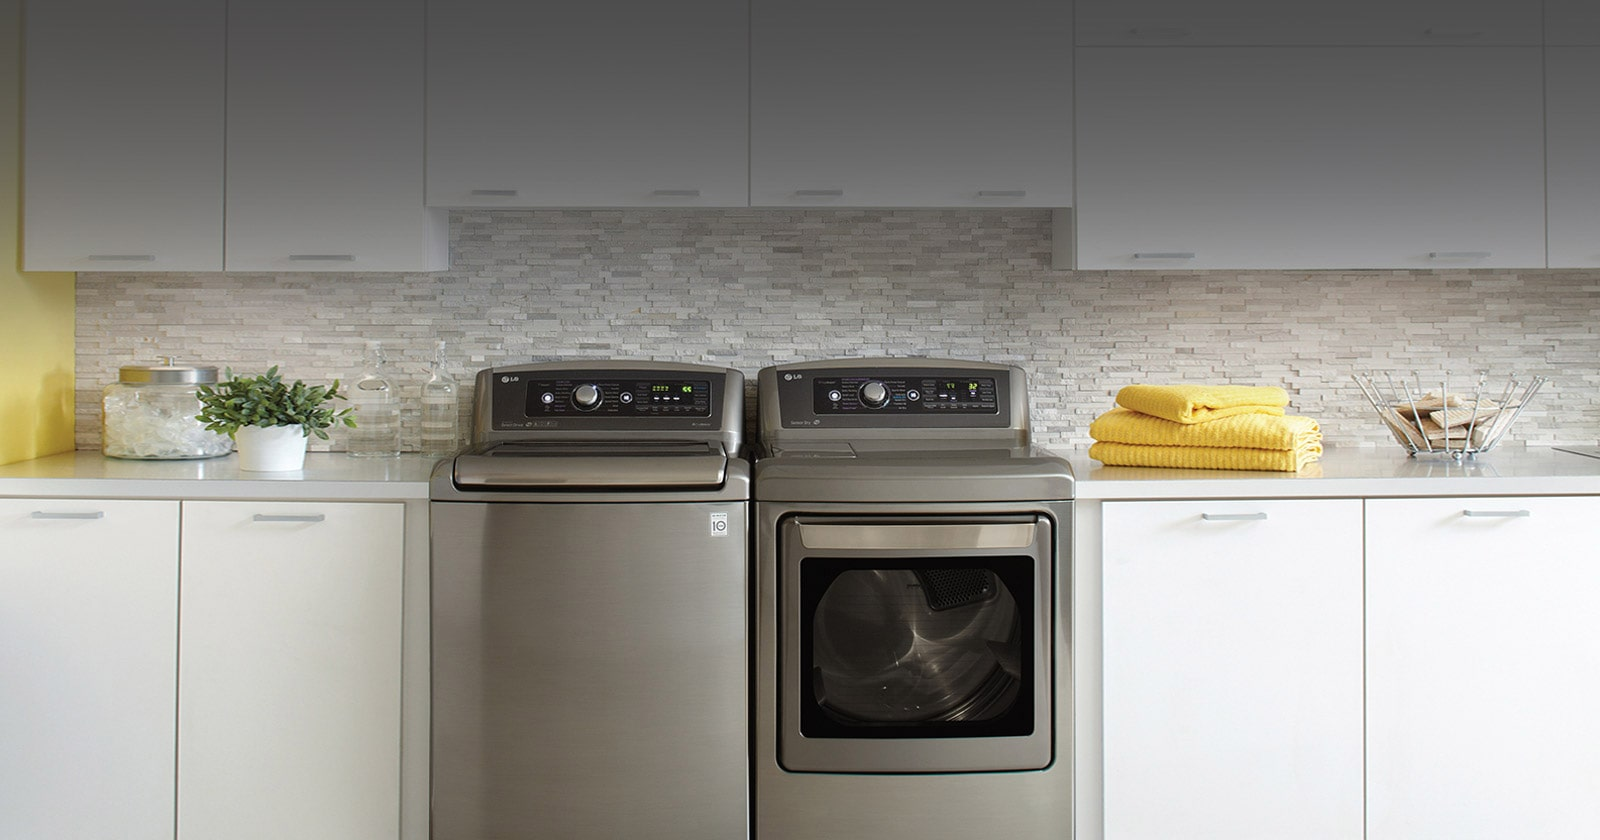 LG Kitchen & Home Appliances: Design a Better Home | LG Canada